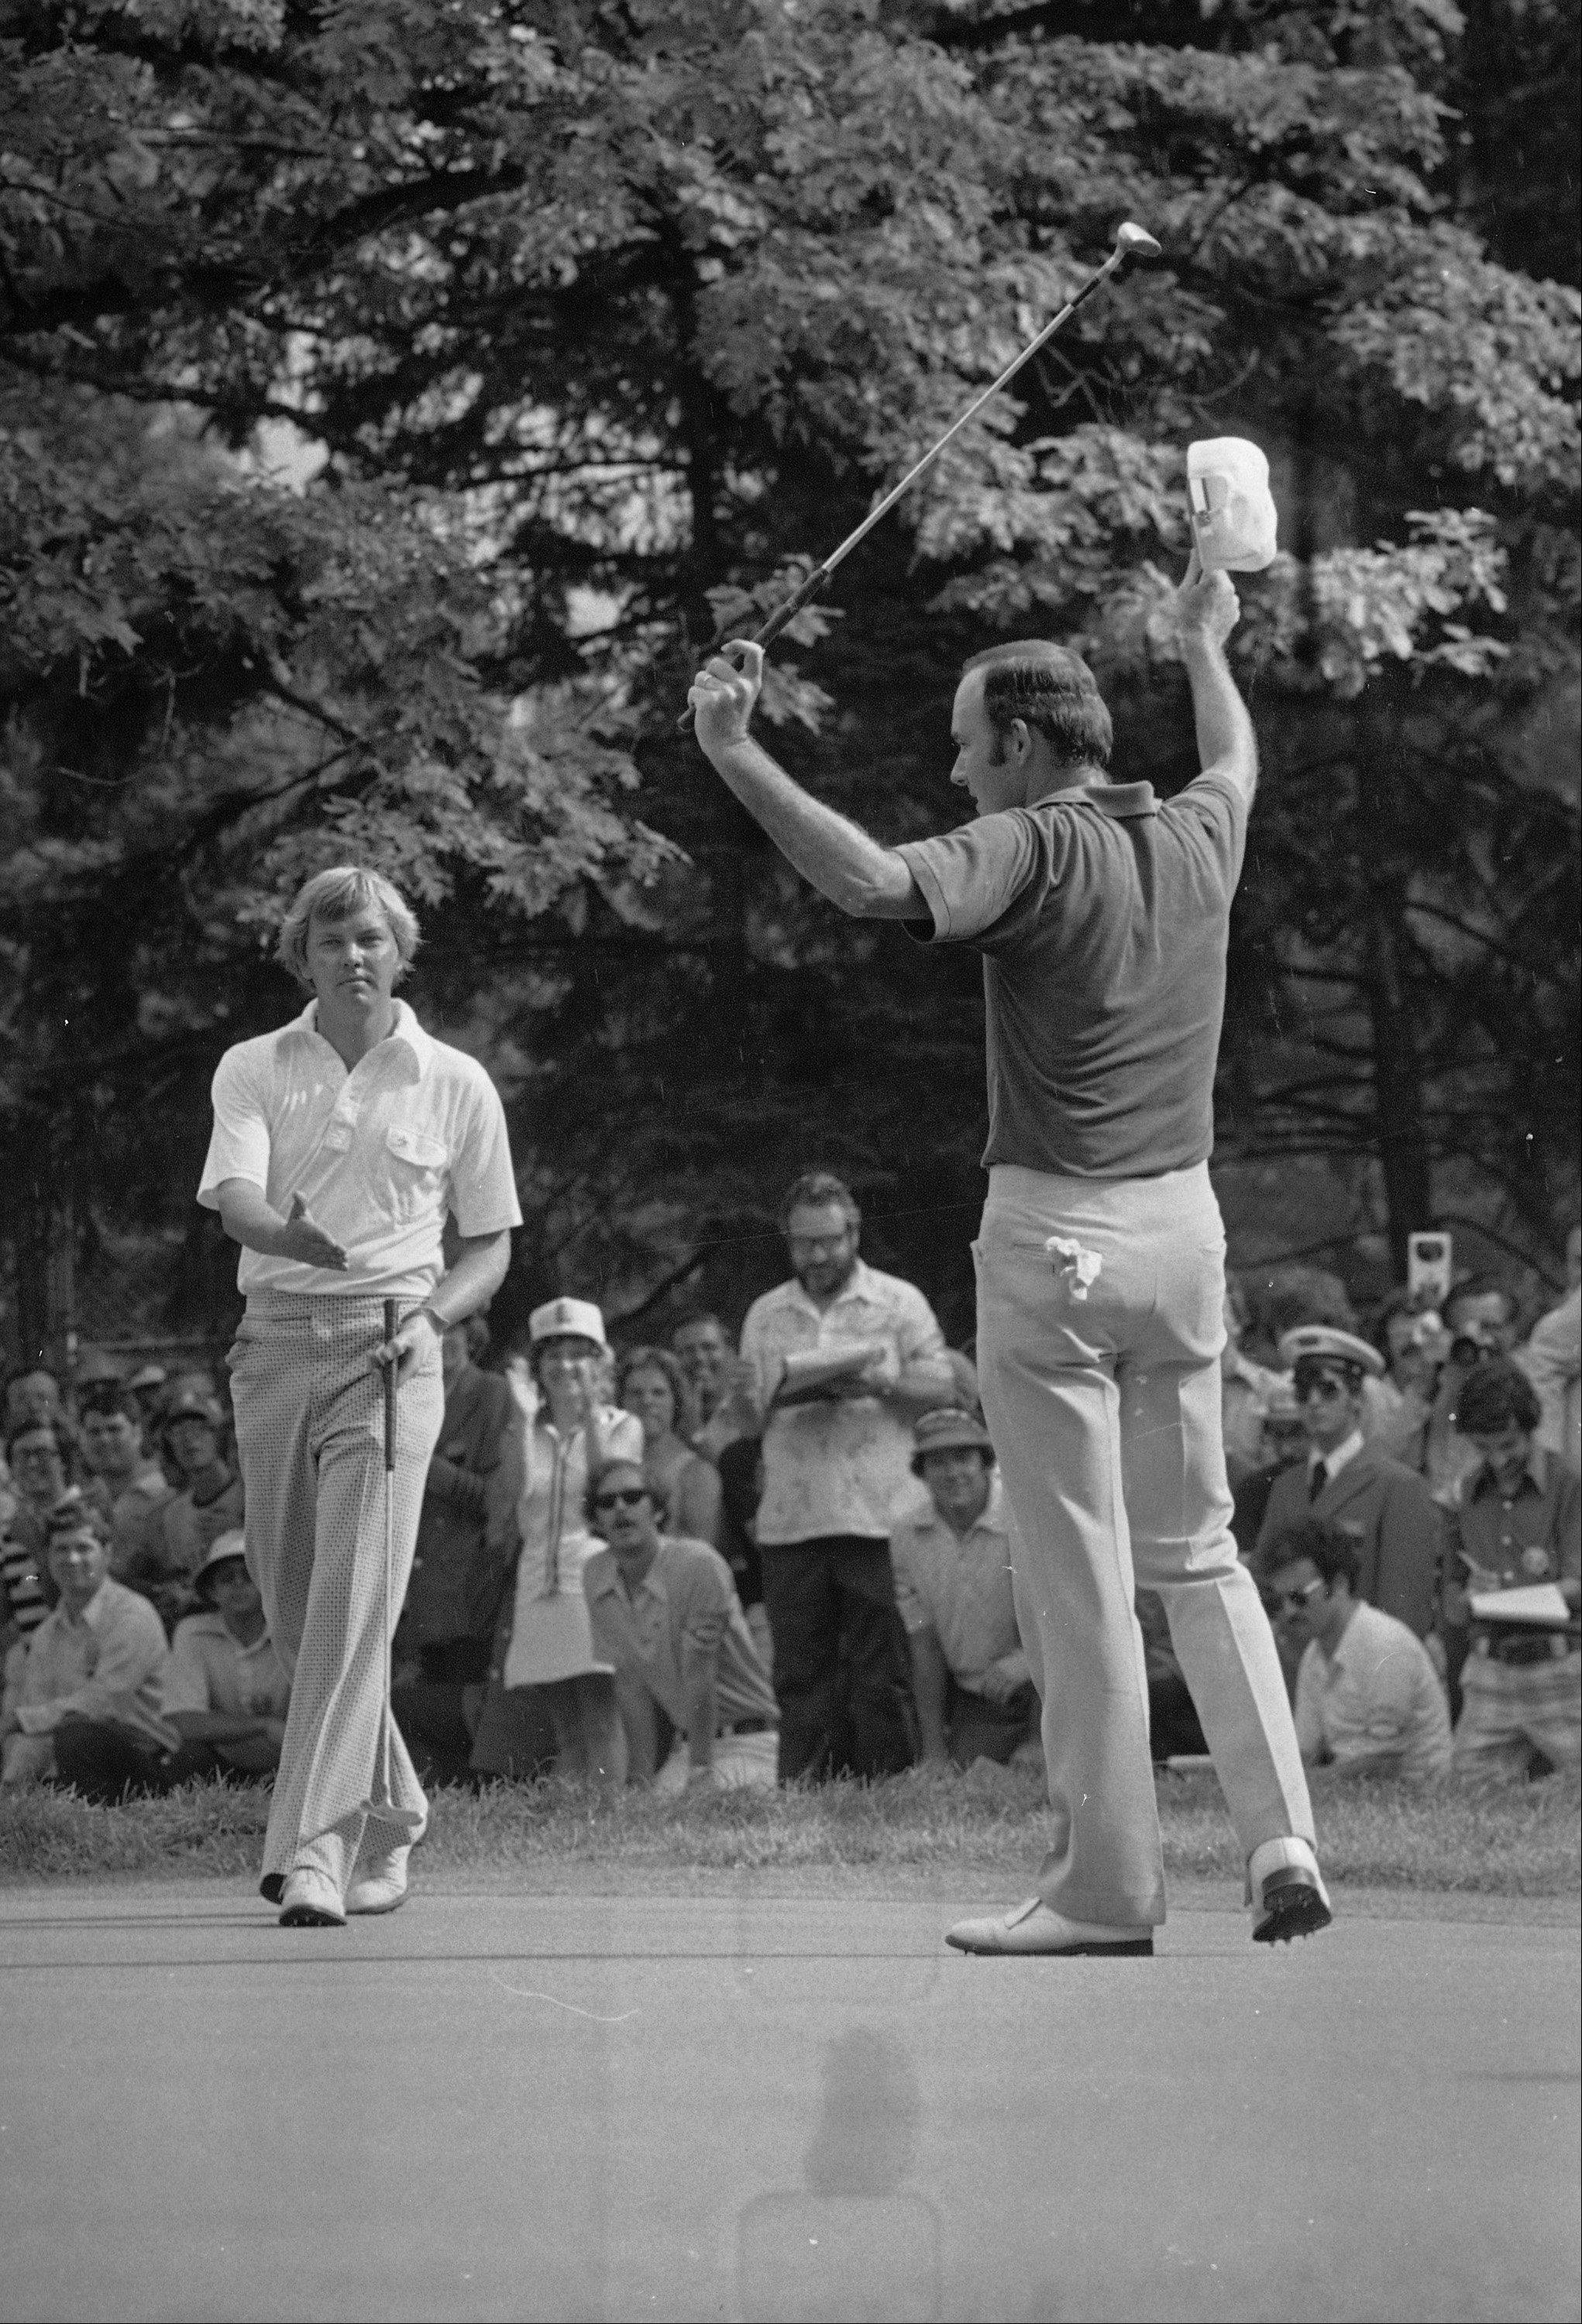 John Mahaffey, Jr., left, reaches out his hand to congratulate Lou Graham on Medinah's 18th green where Graham won the U.S. Open championship by one stroke in the playoff, June 23, 1975.